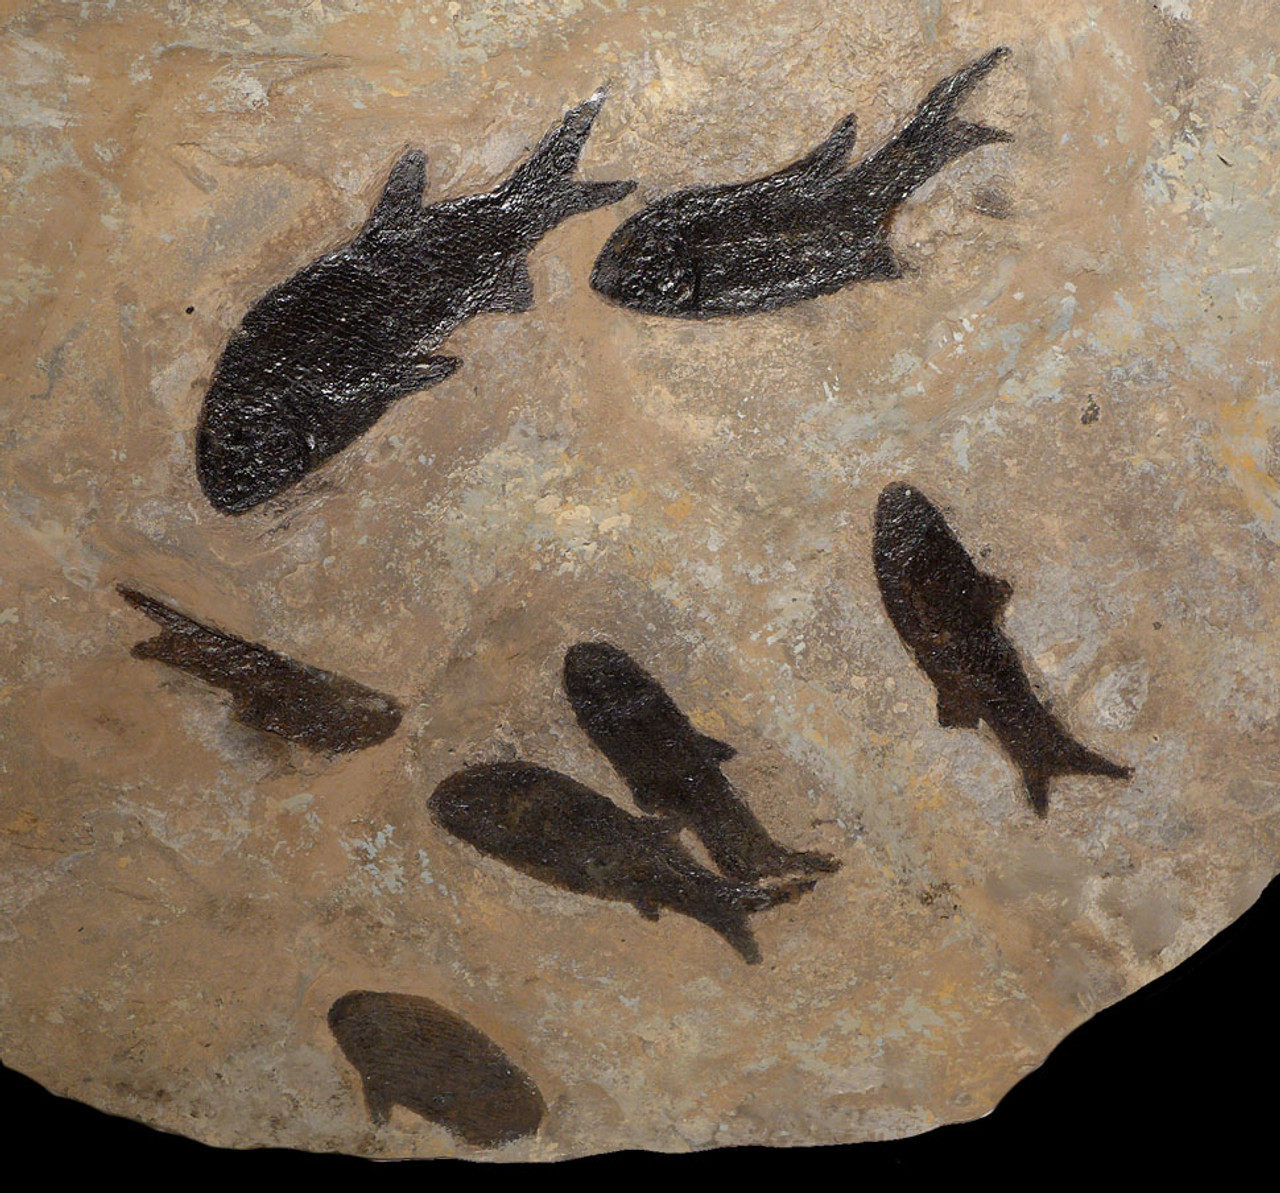 F143 - LARGE MULTIPLE PARAMBLYPTERUS PERMIAN FISH FOSSIL FROM BEFORE THE DINOSAURS